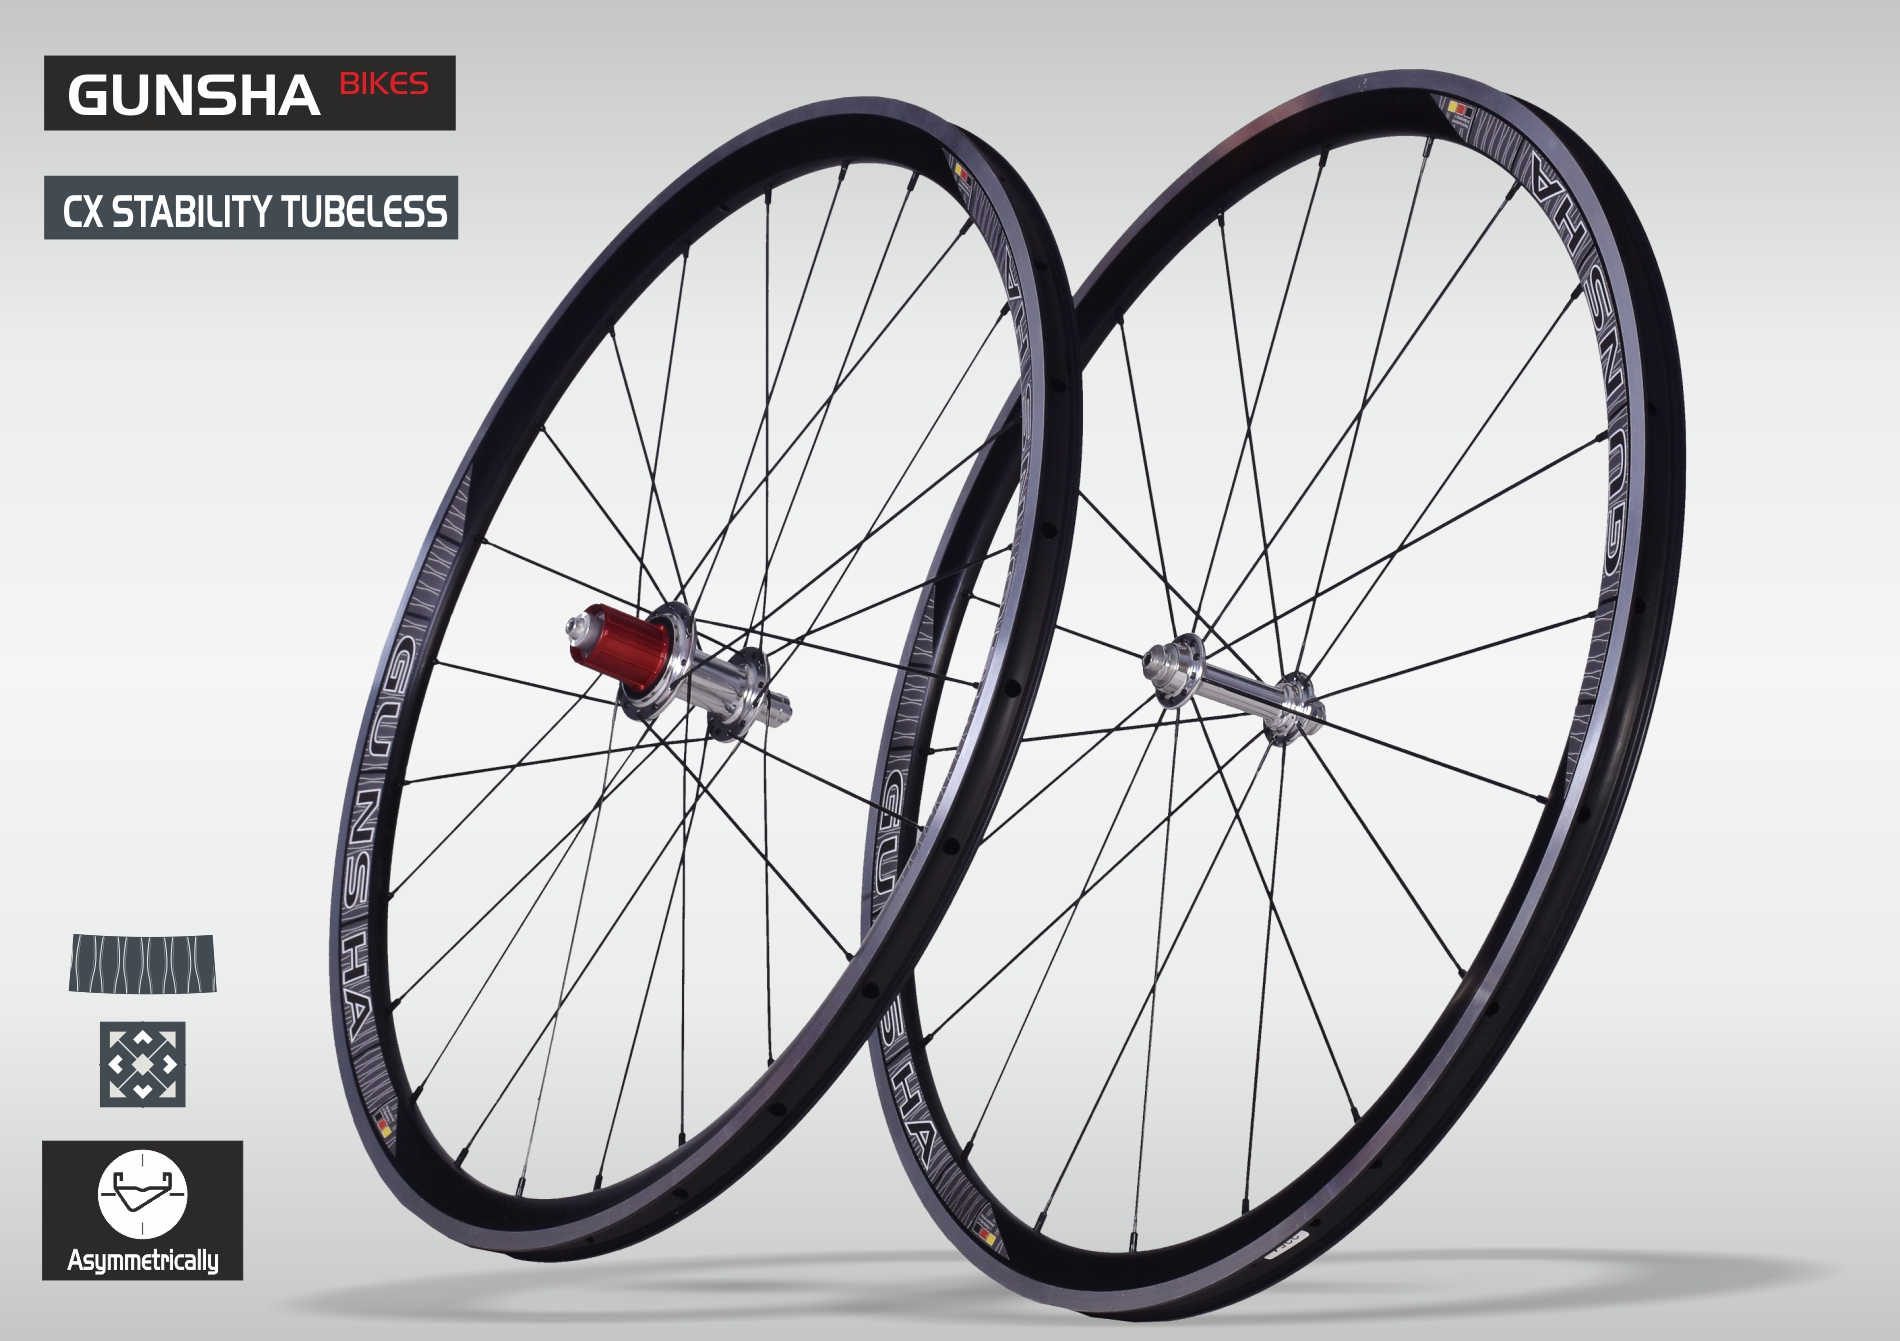 Laufradsatz CX Stability Tubeless